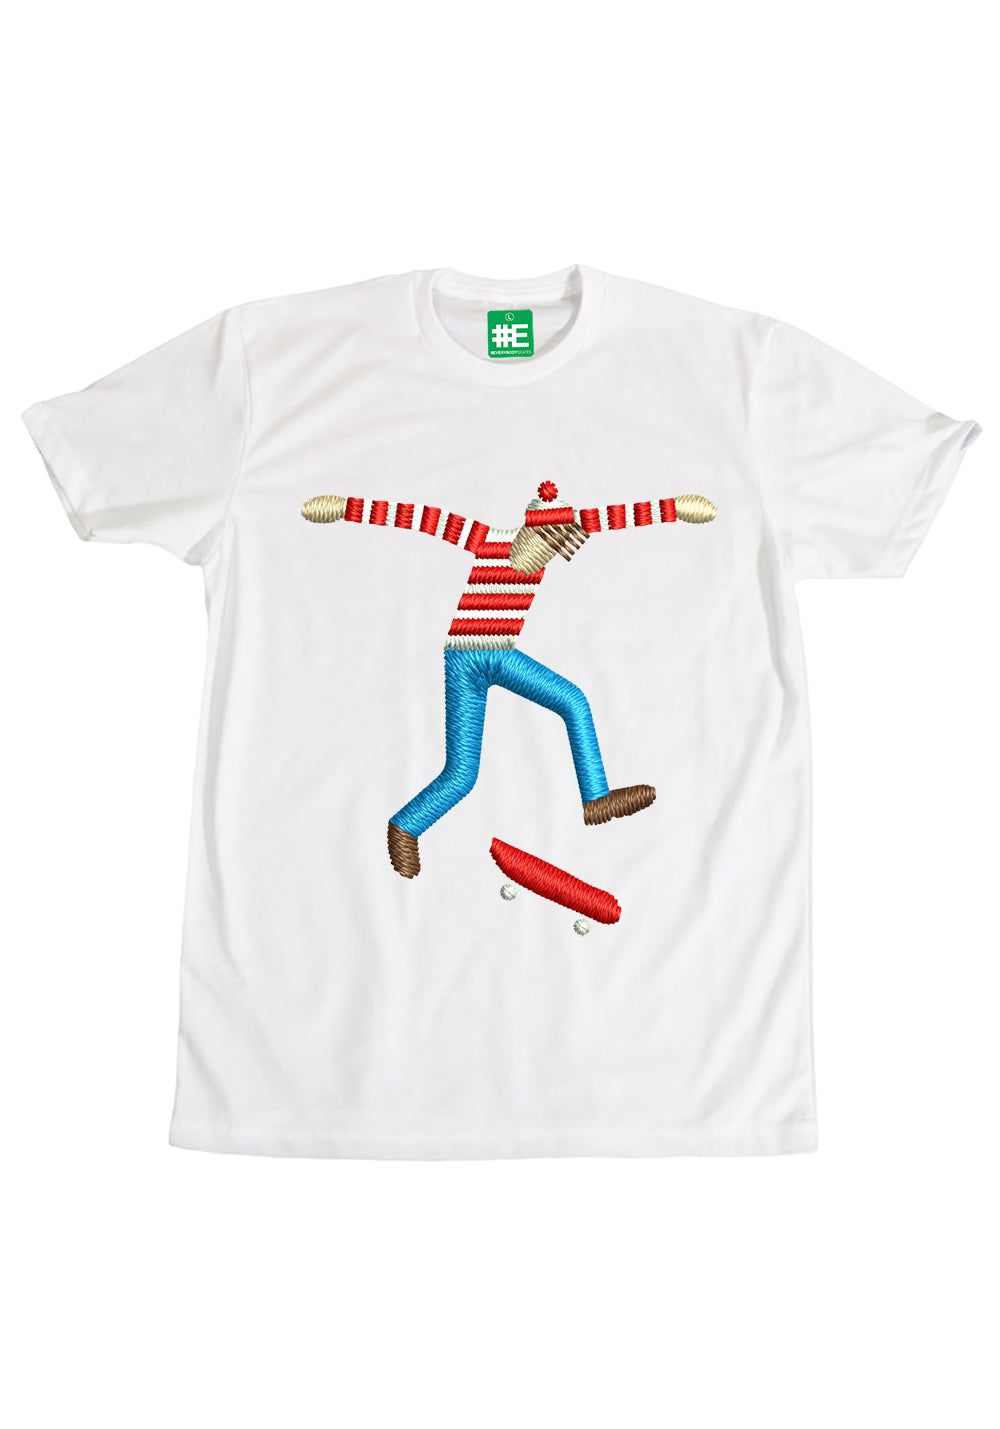 """Wally"" Graphic T-shirt"